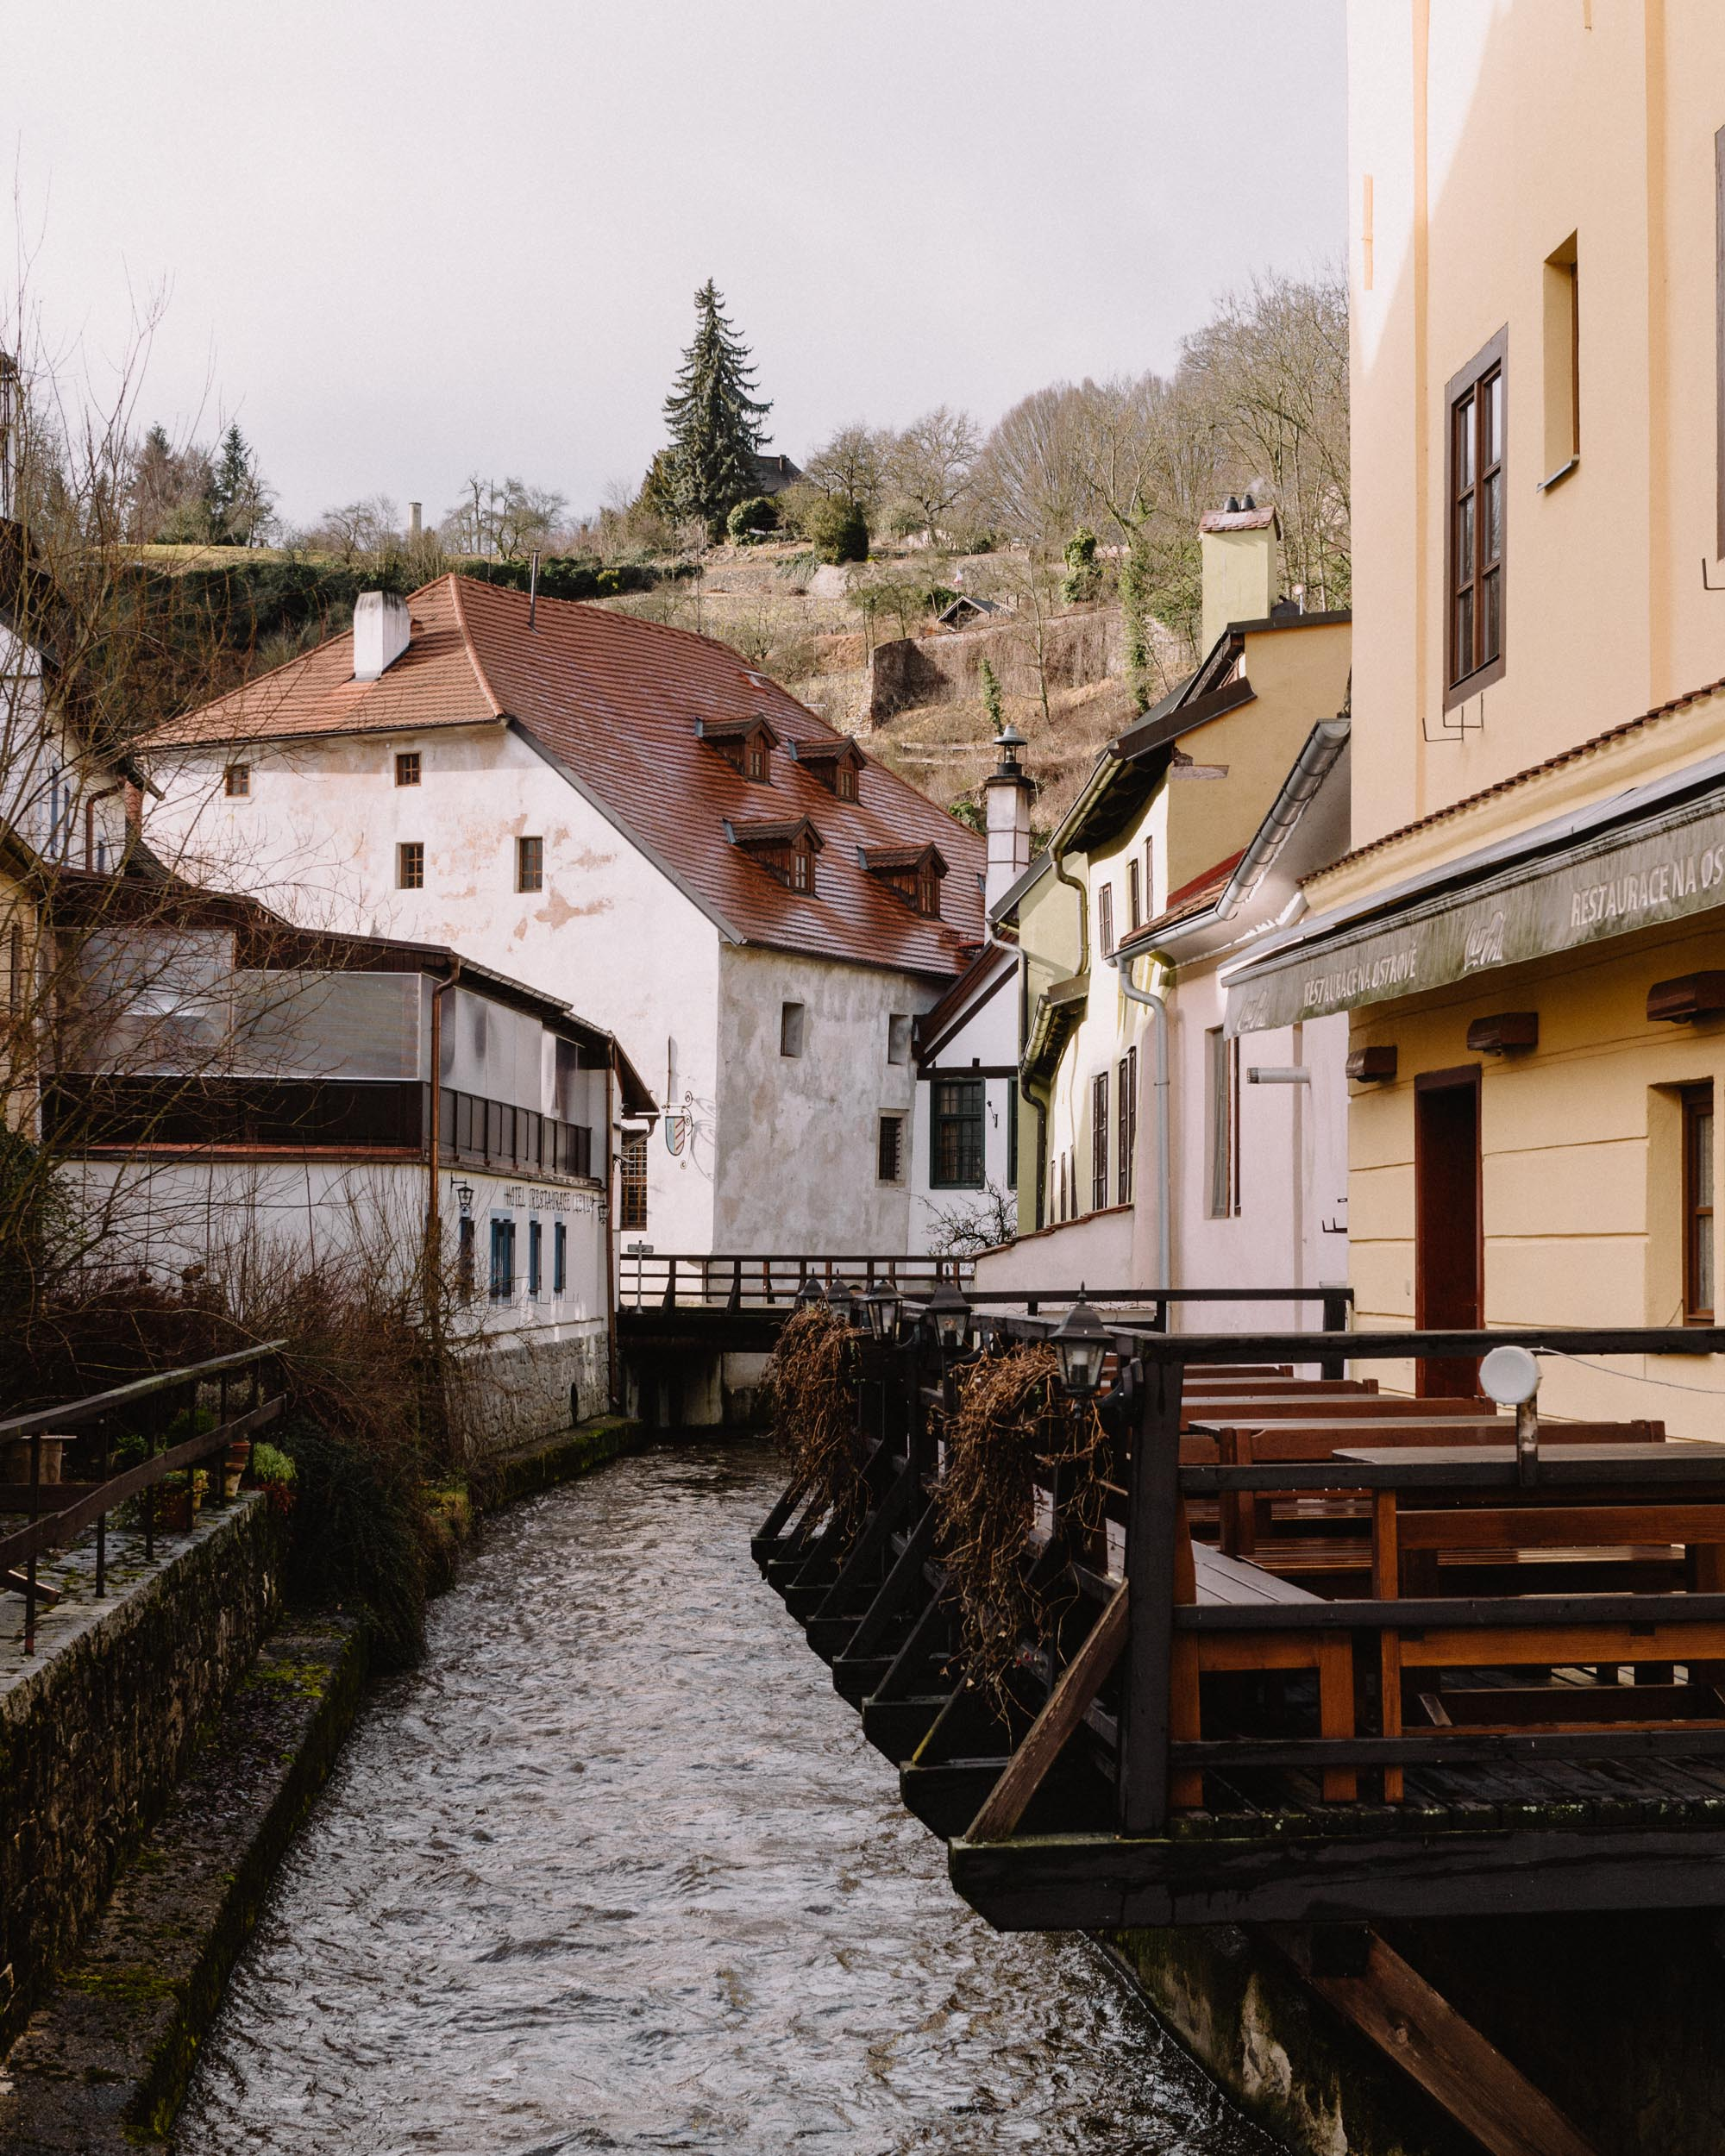 Buildings on the water in Cesky, Krumlov.